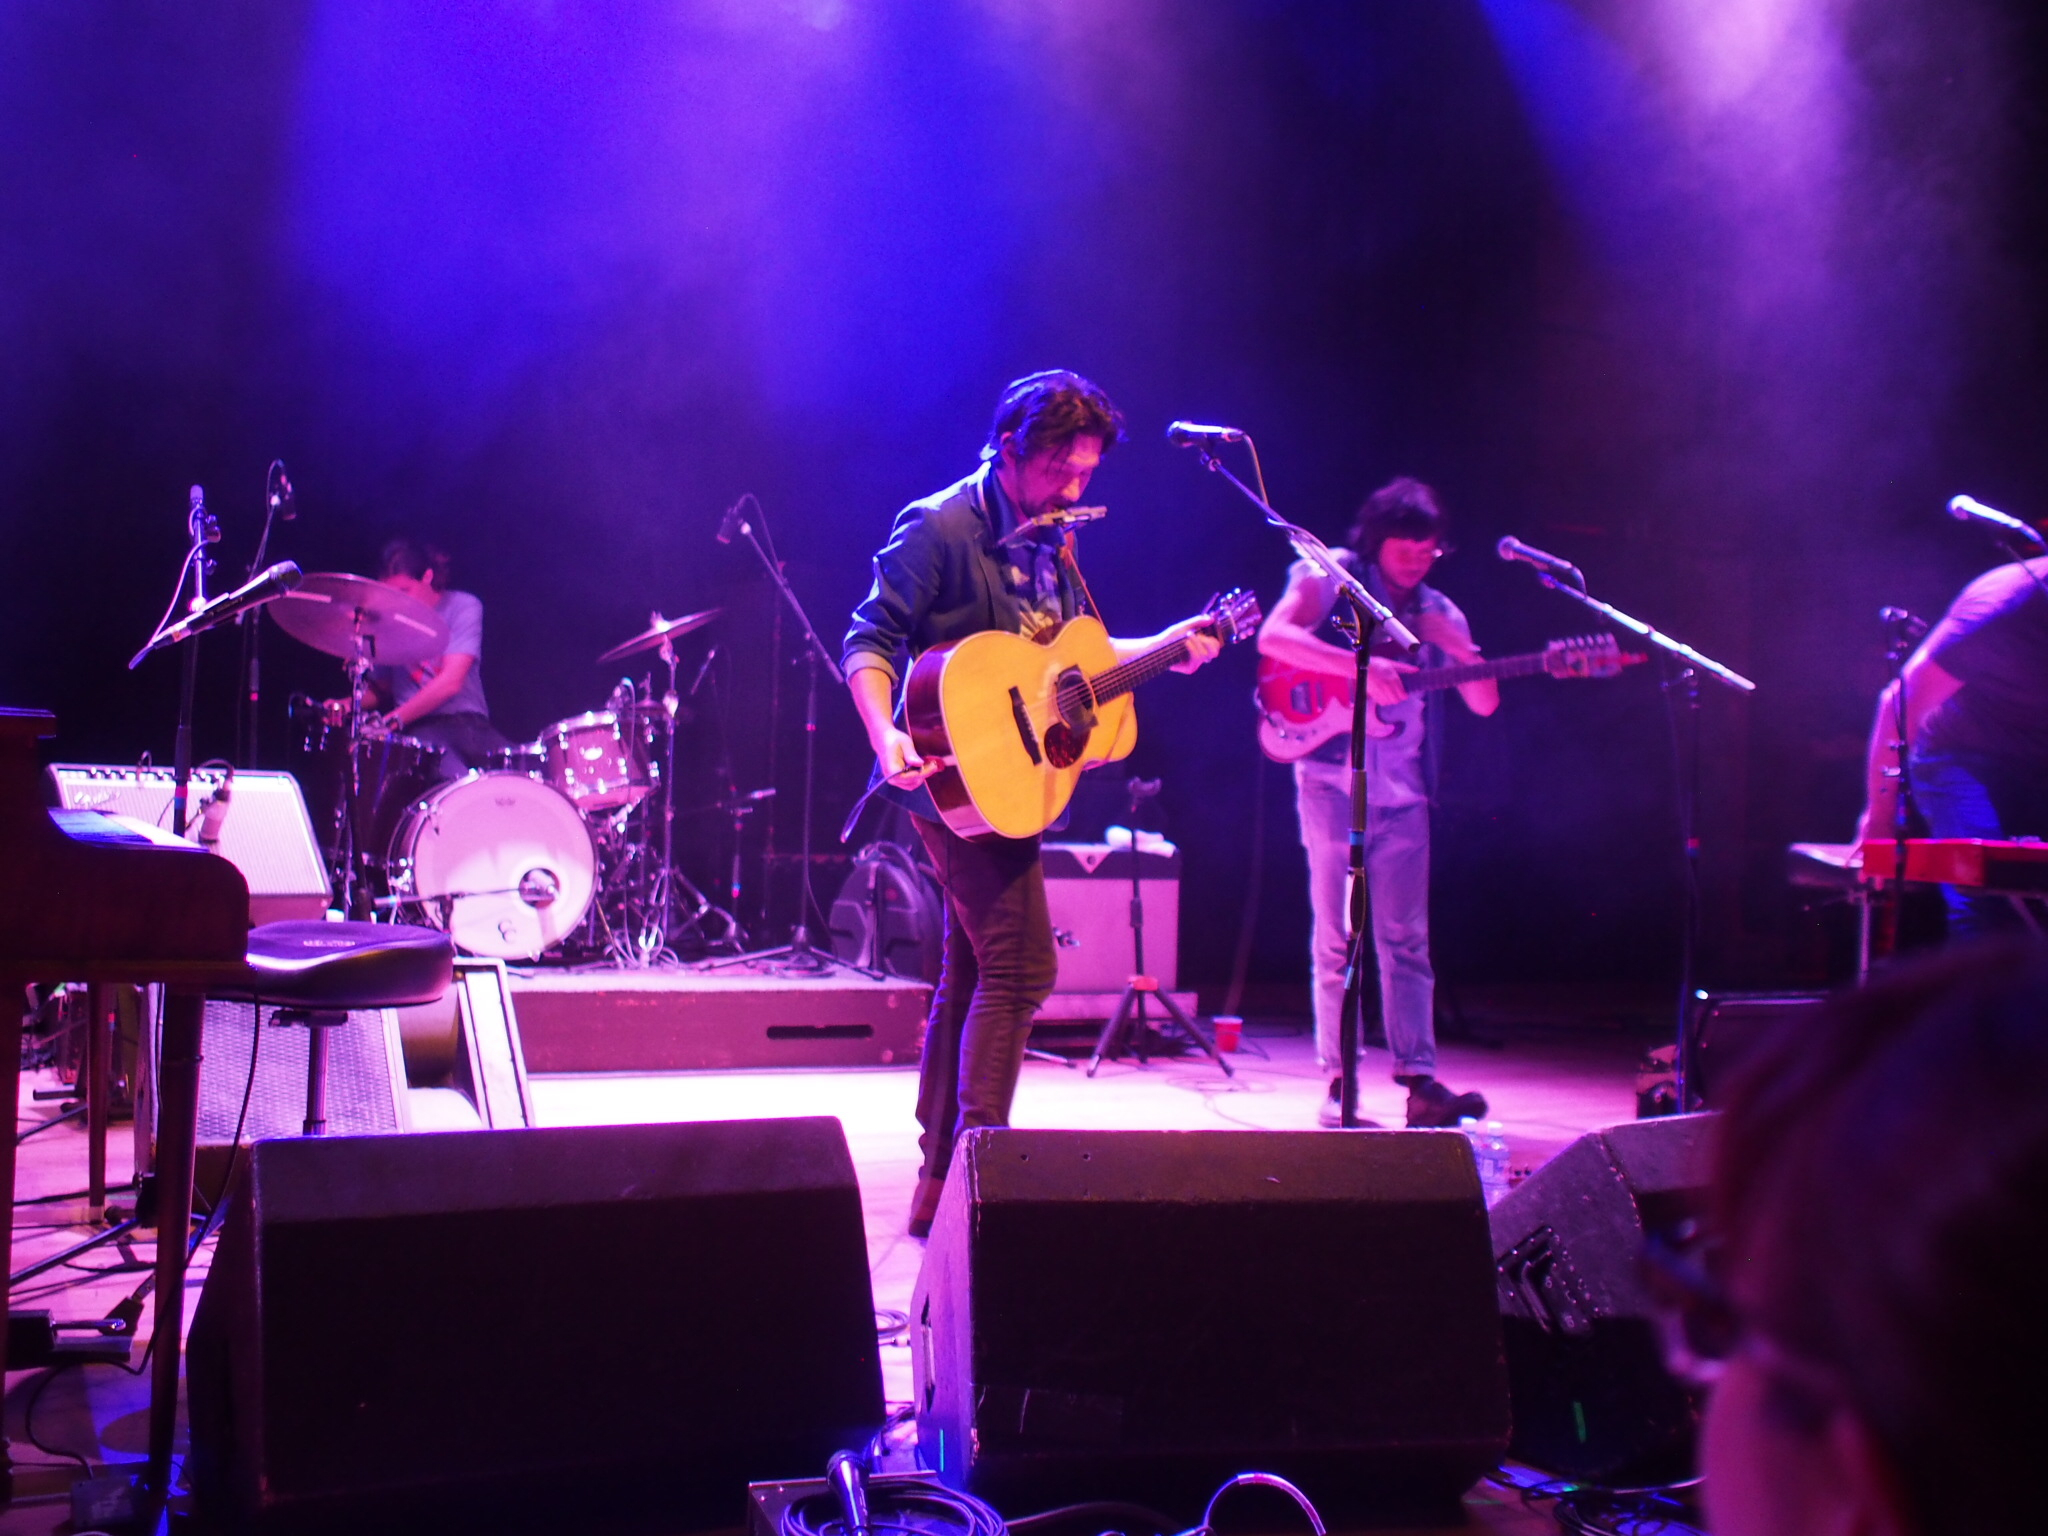 Conor Oberst switching out his guitars at Boulder Theater, 1 July 2017. Photo: Jocelyn Rockhold